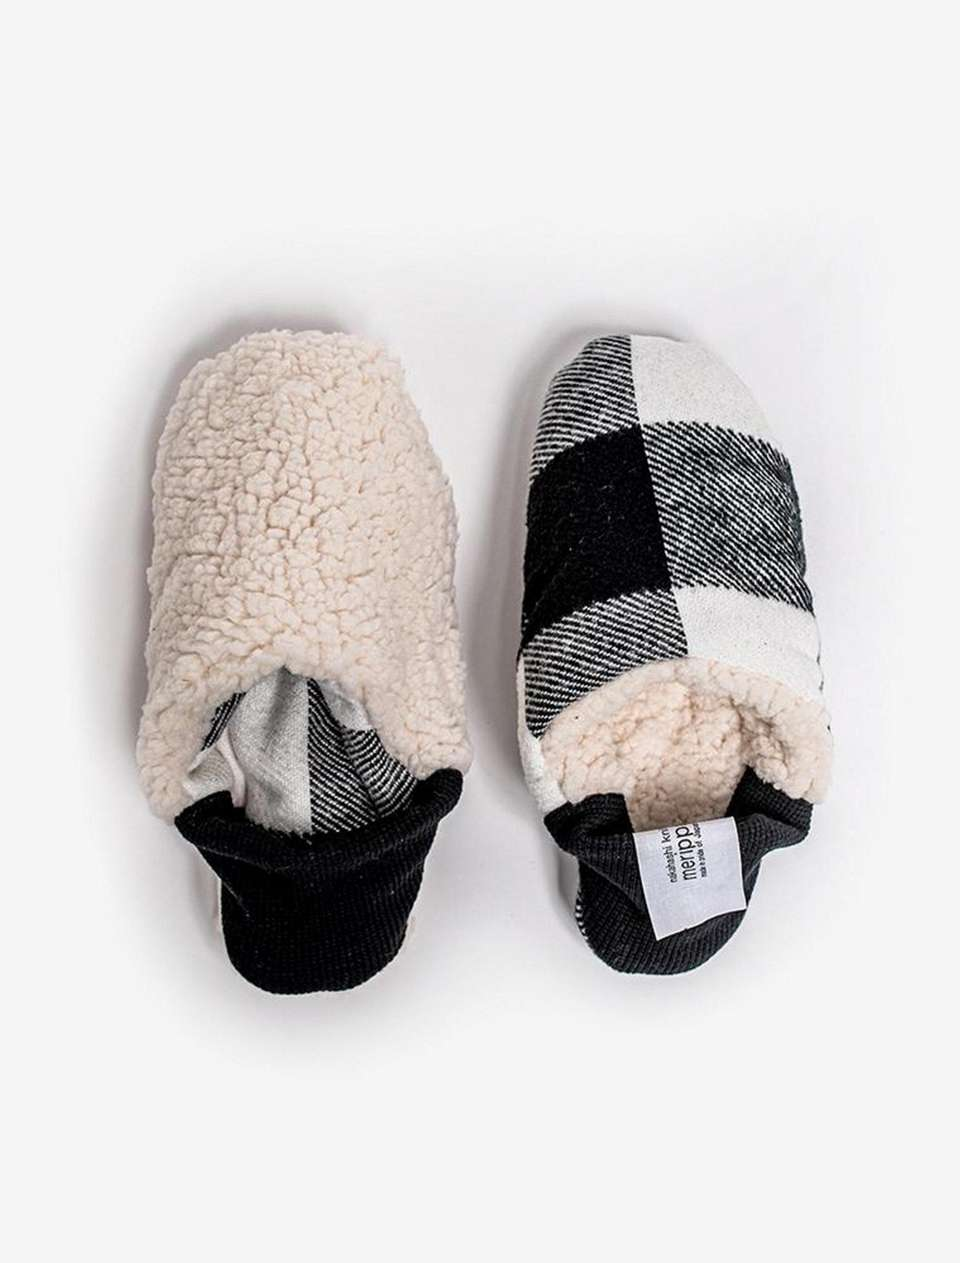 These cozy and reversible Merippa house shoes are